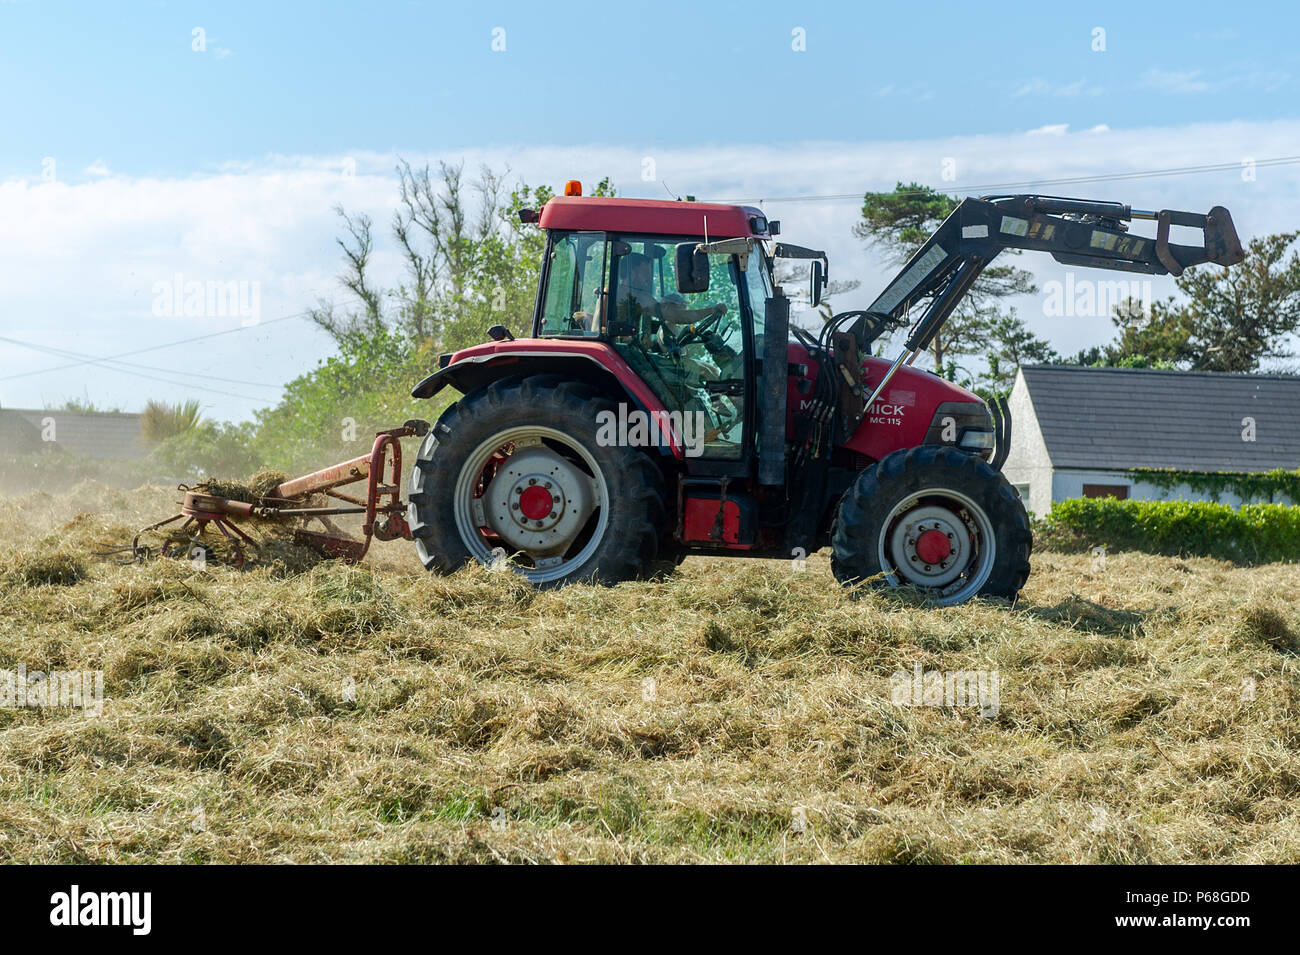 Schull, West Cork, Ireland. 29th June, 2018. A farmer works on silage in his field, making the most of the dry weather whilst it lasts. Temperatures will remain in the mid 20's Celsius for the rest of the weekend but rain is forecast from Monday onwards. Credit: Andy Gibson/Alamy Live News. - Stock Image